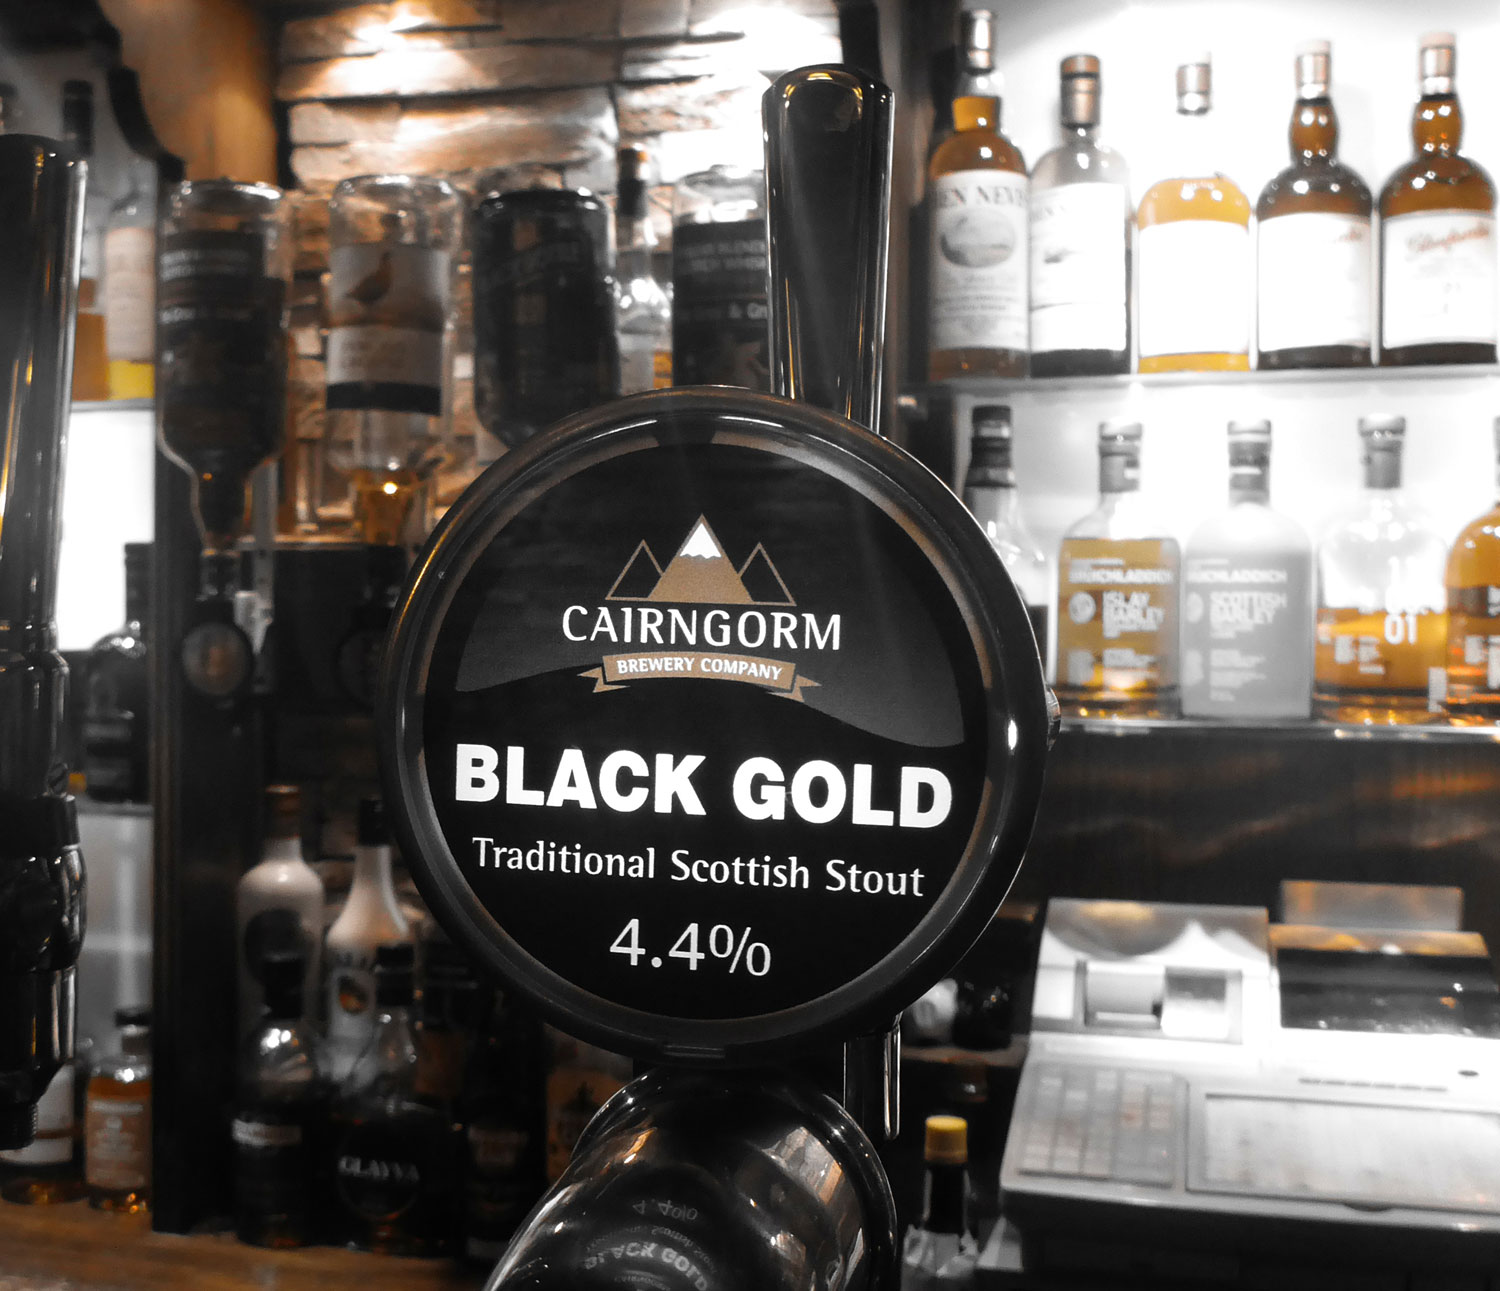 Cairngorm Black Gold Craft Stout